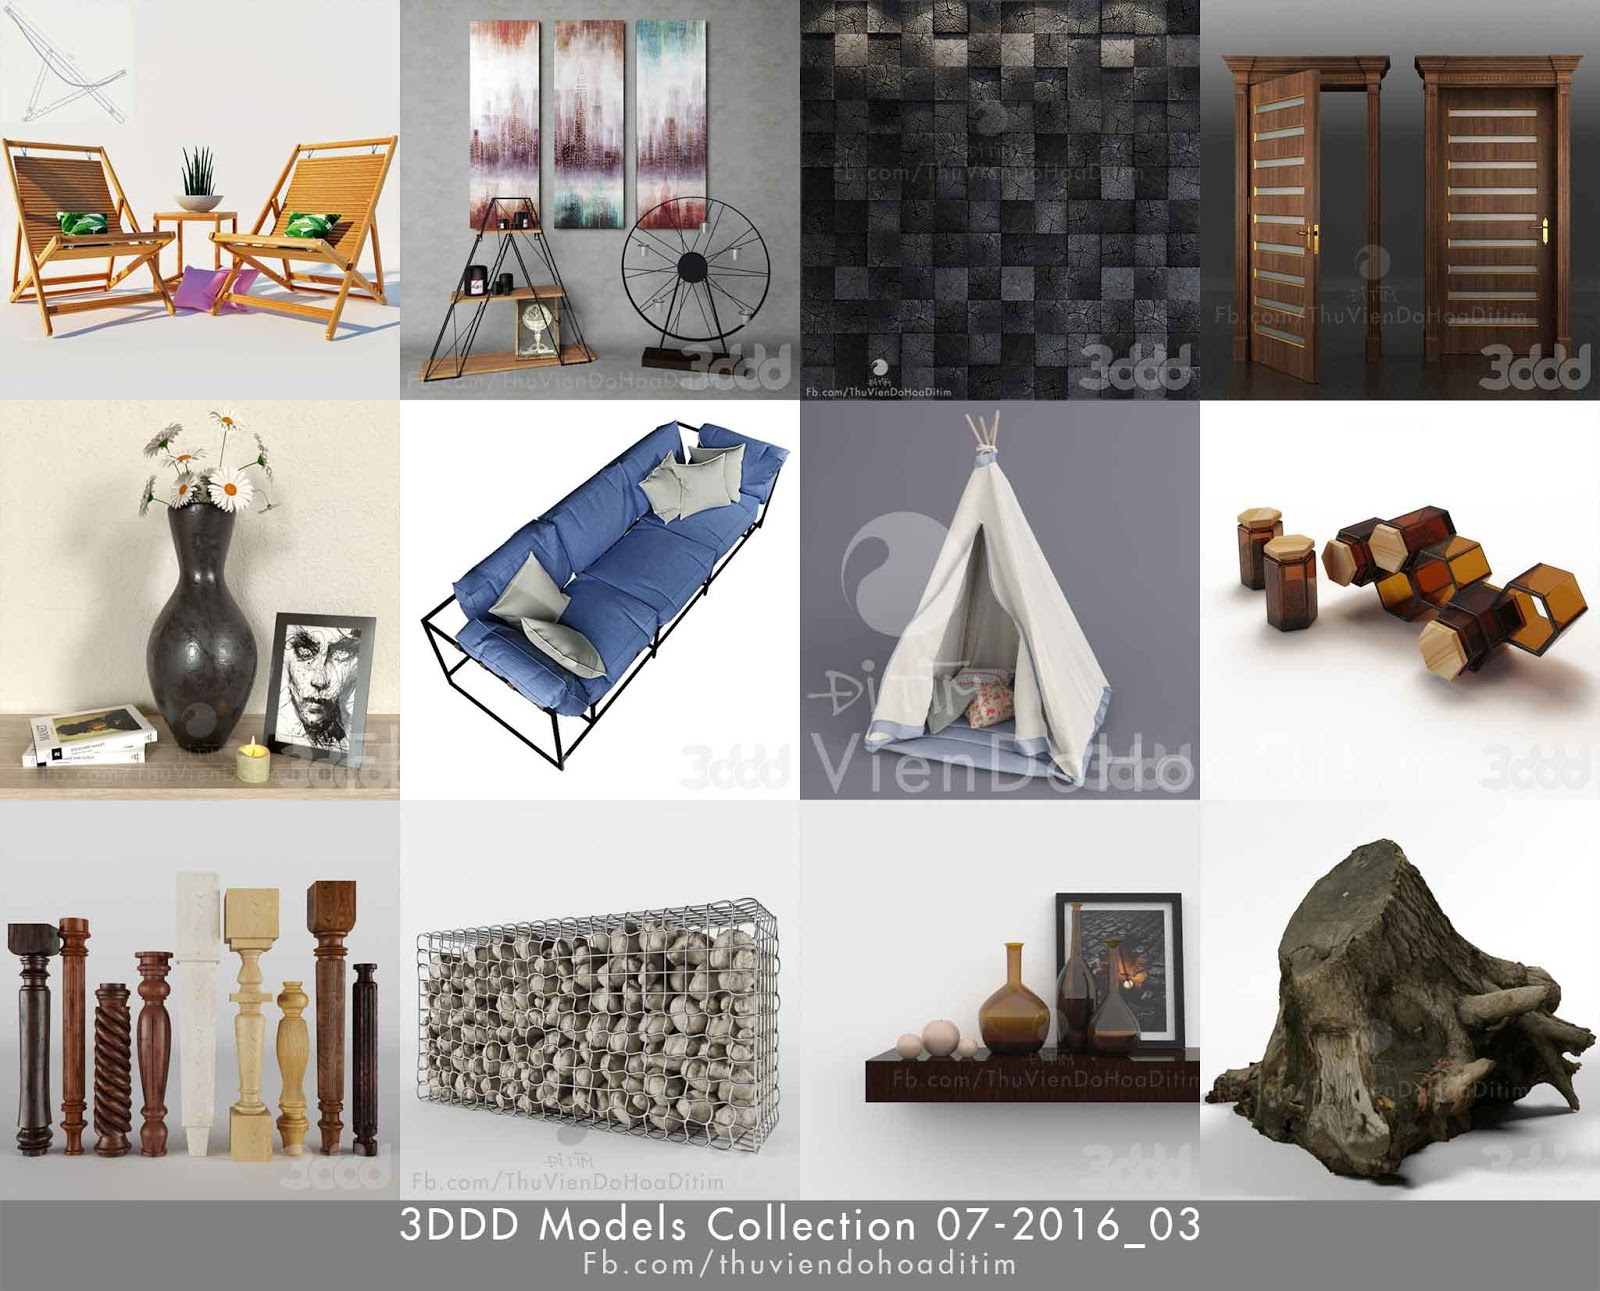 3dsky 3ddd models collection for 3d model decoration